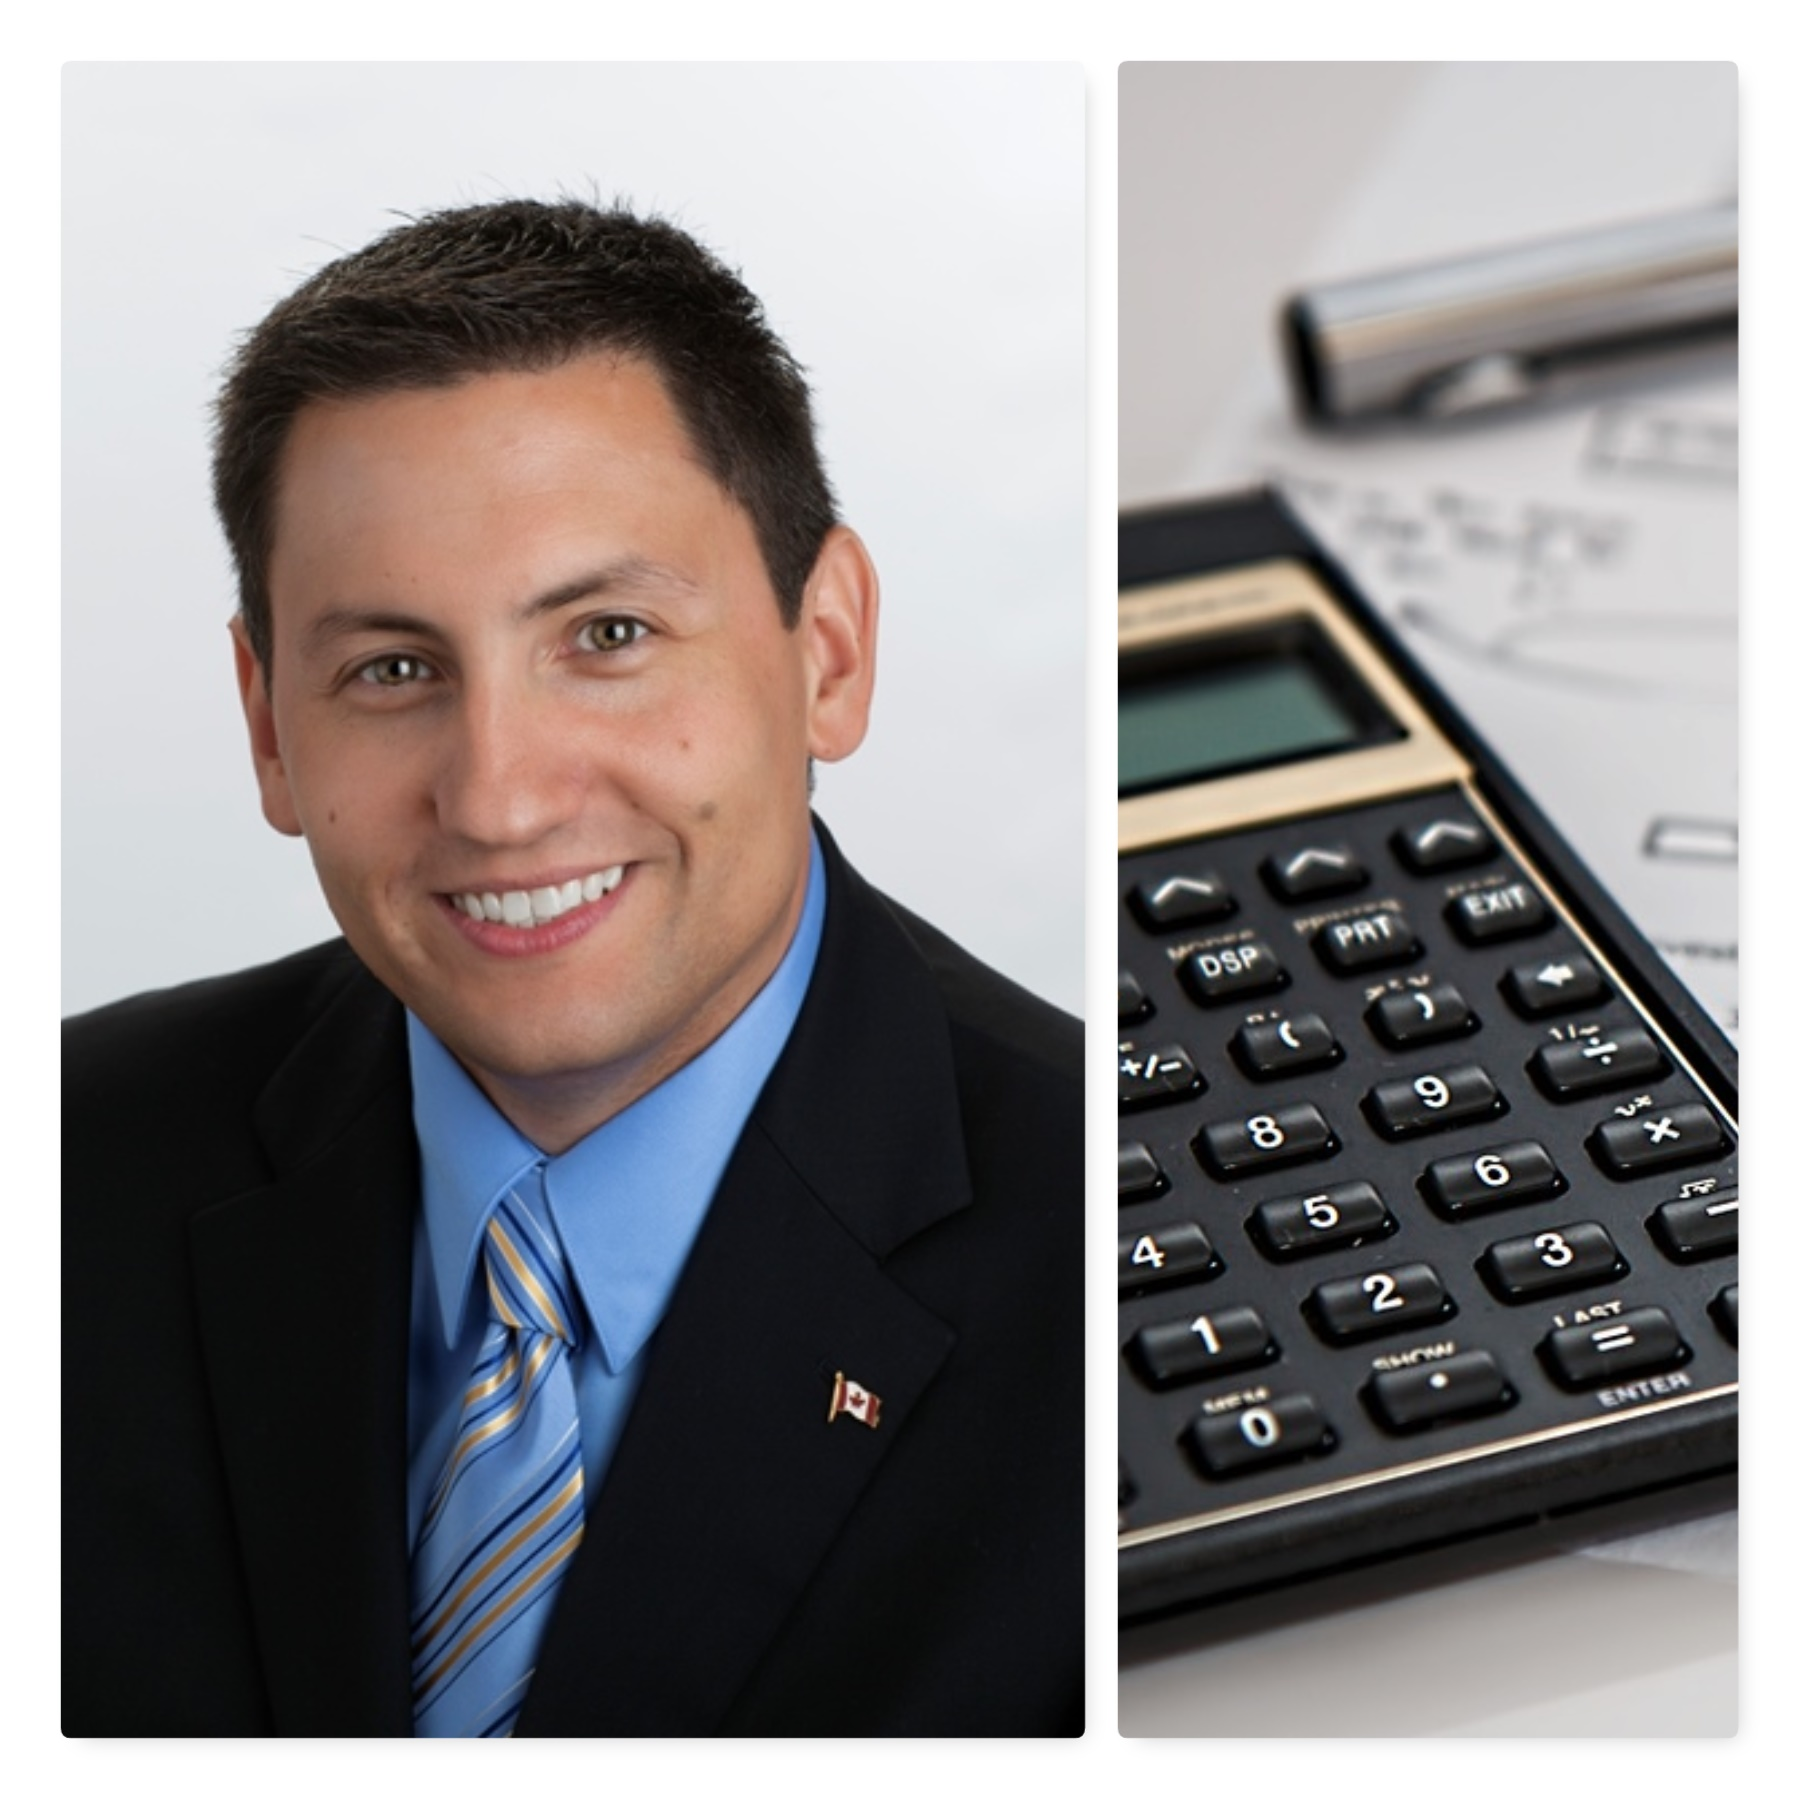 MP reminds residents to be vigilant this tax season